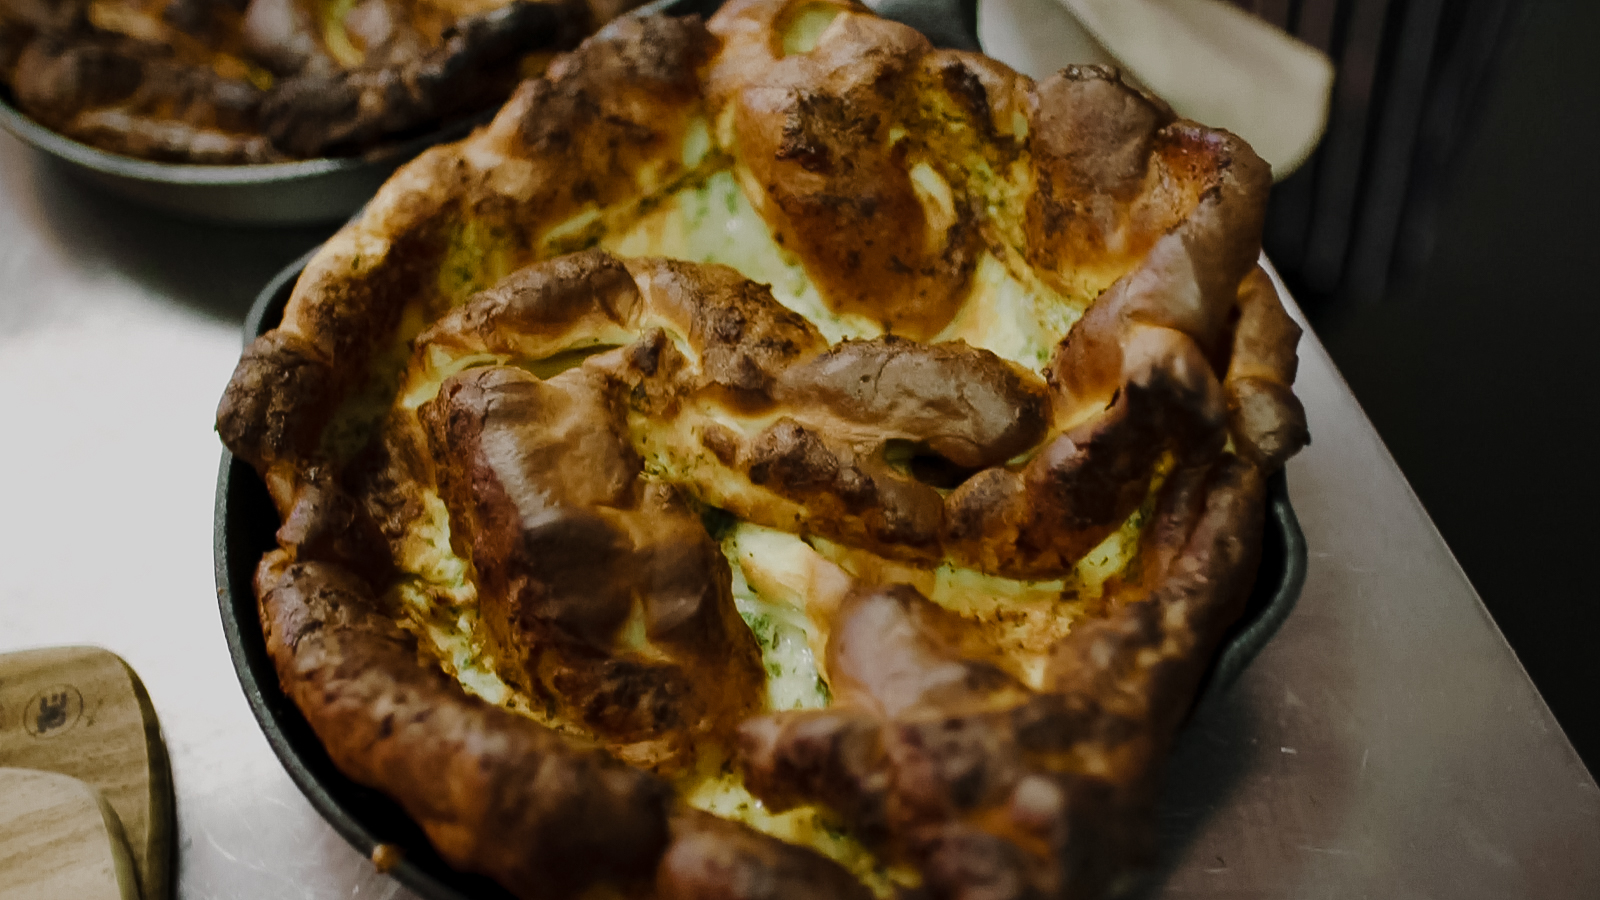 Giant Skillet Yorkshire Pudding